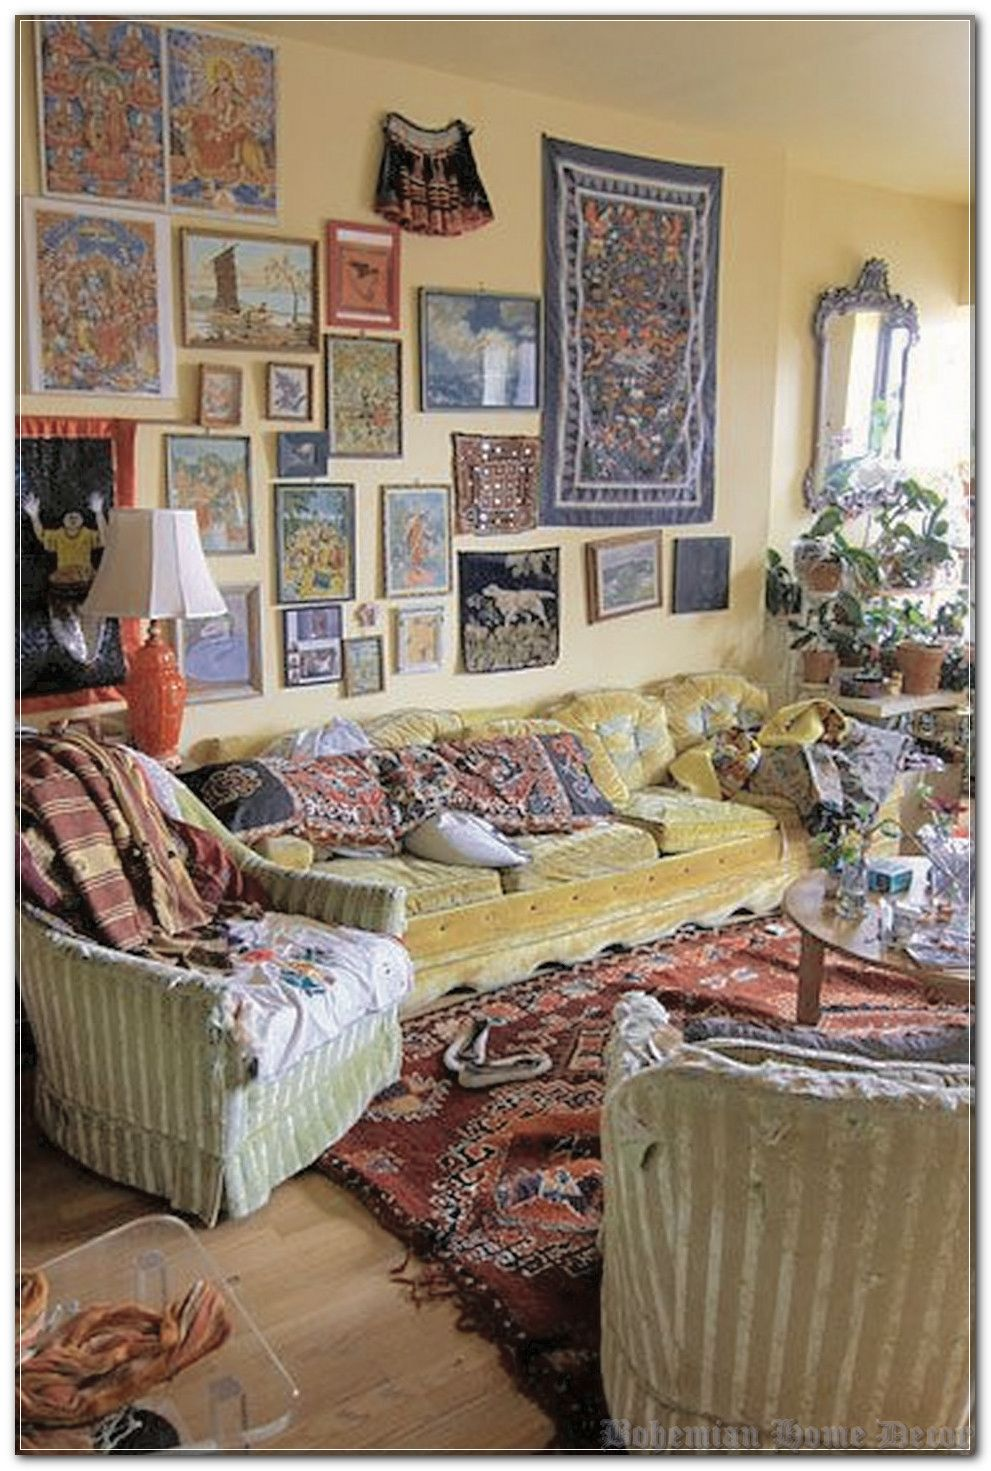 Want A Thriving Business? Focus On Bohemian Home Decor!